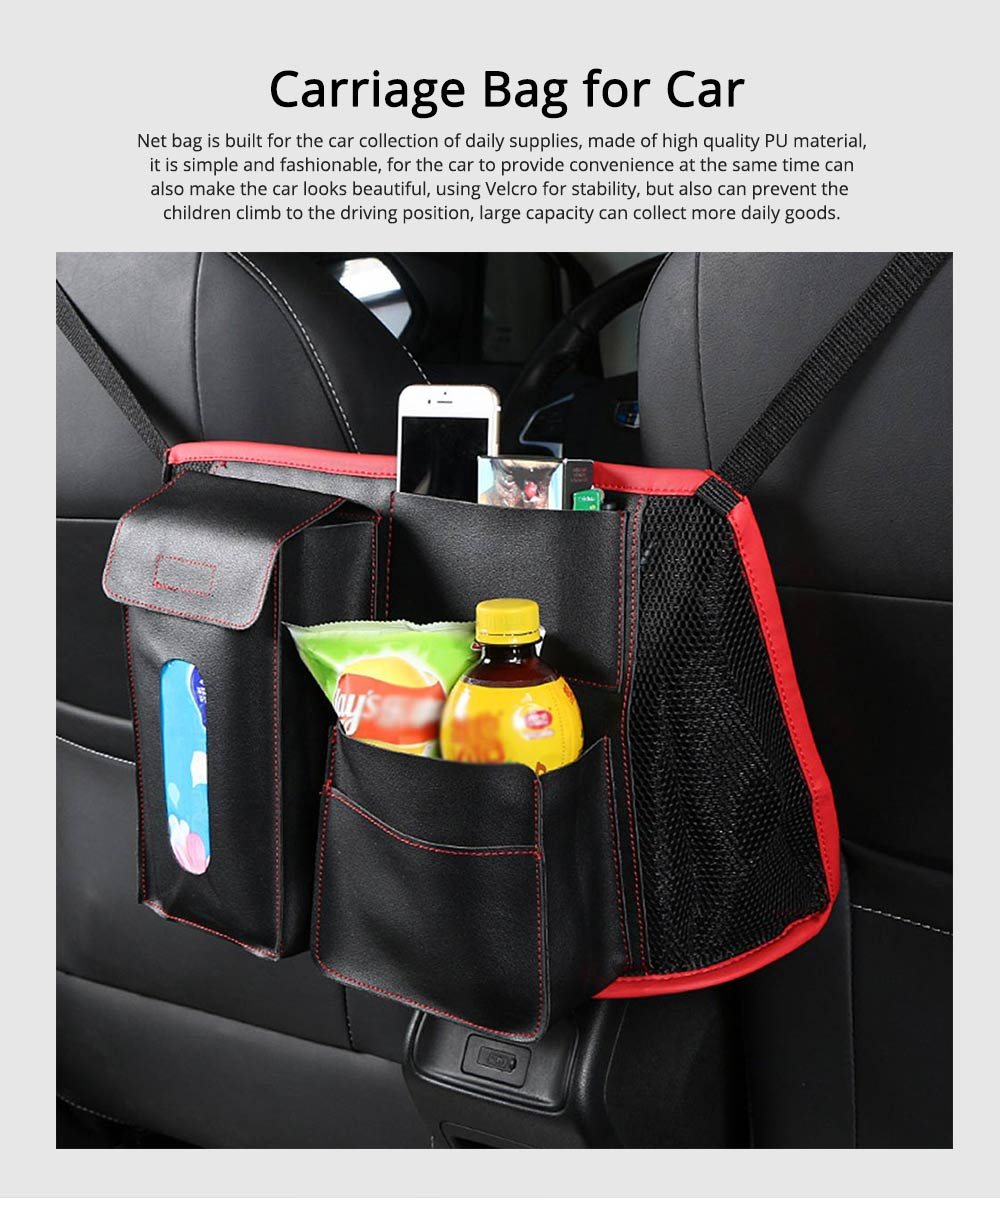 Carriage Bag for Mammy, Baby, PU Material Big Capacity with Pockets Velcro Stability Cross-border Storage Net Bag for Store Daily Items Car Collection Bag 0